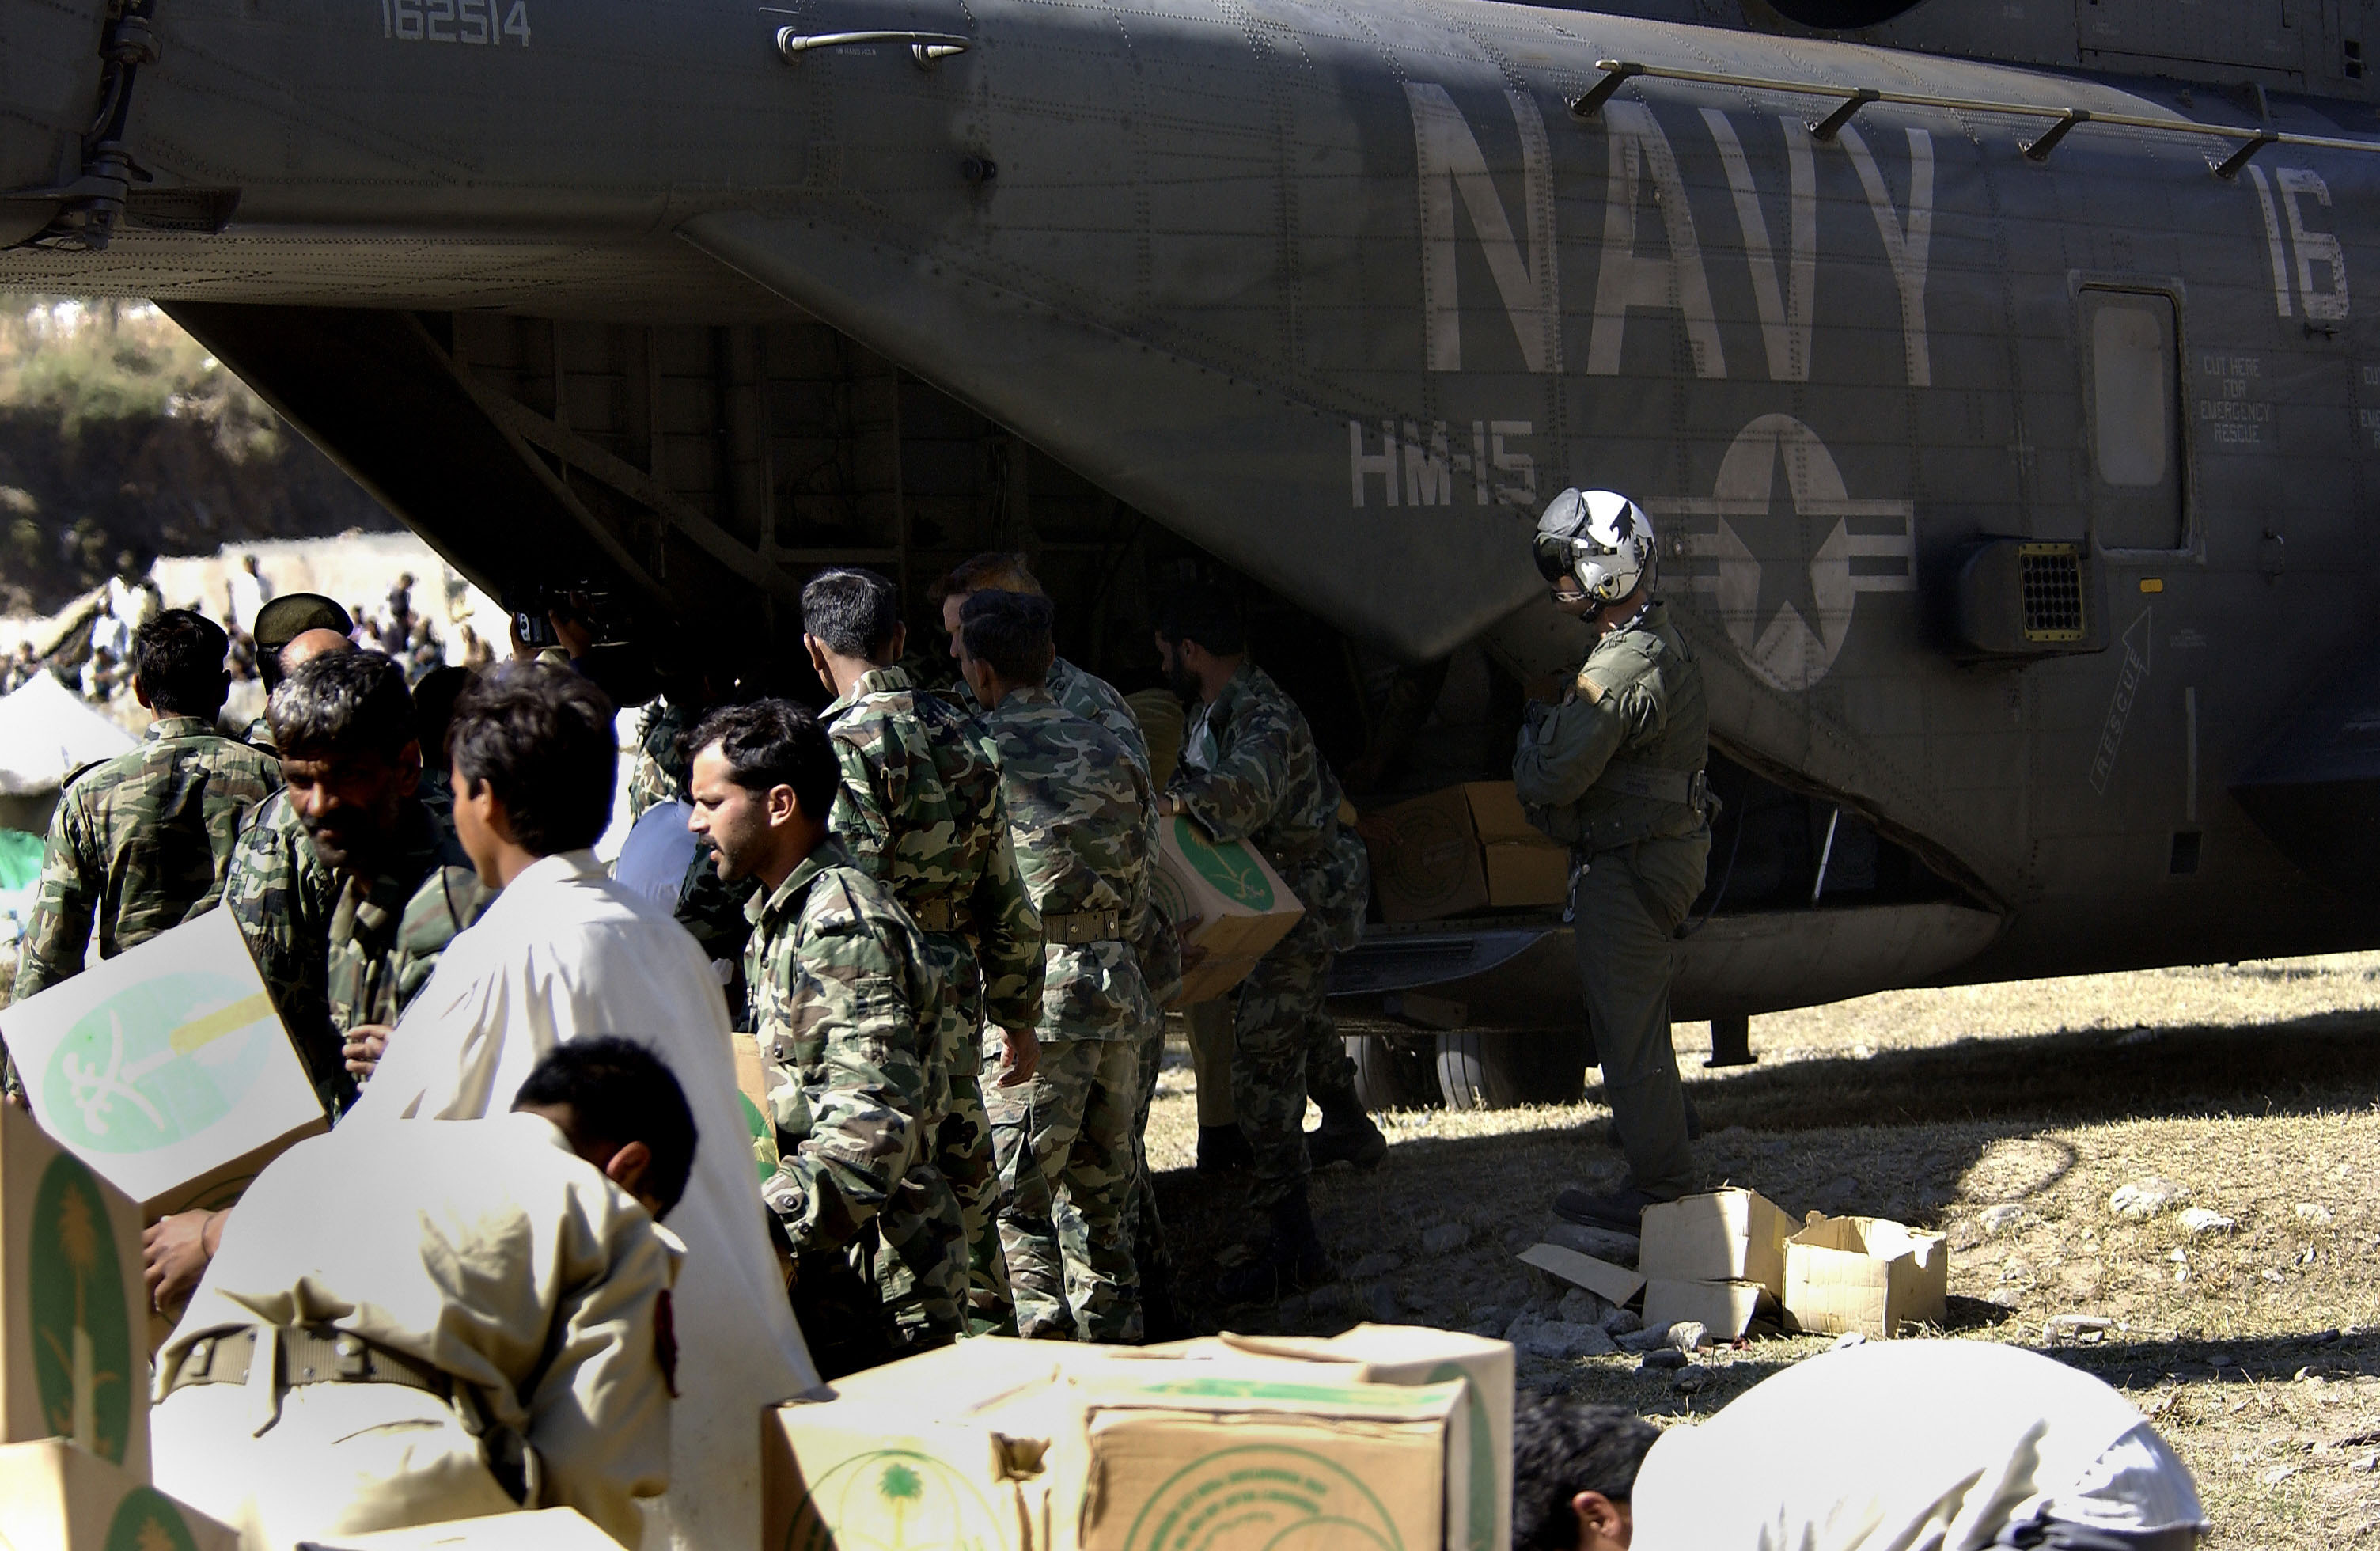 us navy helicopter with File Us Navy 051021 F 9085b 053 Pakistani Soldiers Unload Disaster Relief Supplies From A U S  Navy Mh 53 Sea Dragon Helicopter At Balakot  Pakistan on File US Navy 050709 N 0050T 018 U S  Navy Chaplain  Cmdr  Ab Bihn Nguyen delivers an invocation during a funeral service held in honor of Senior Chief  SEAL  Daniel R  Healy  at St  Charles Borromeo Catholic Church furthermore H 56 walk besides File us navy 020223 N 6492h 501 uss john f  kennedy passes gibraltar moreover File PBY Catalina michael furthermore File US Navy 051025 M 6538A 013 A U S  Marine Corps CH 53 Super Stallion helicopter  assigned to Marine Heavy Helicopter Squadron Four Six Six  HMH 466   externally lifts a UH 1N Huey over Iraq.